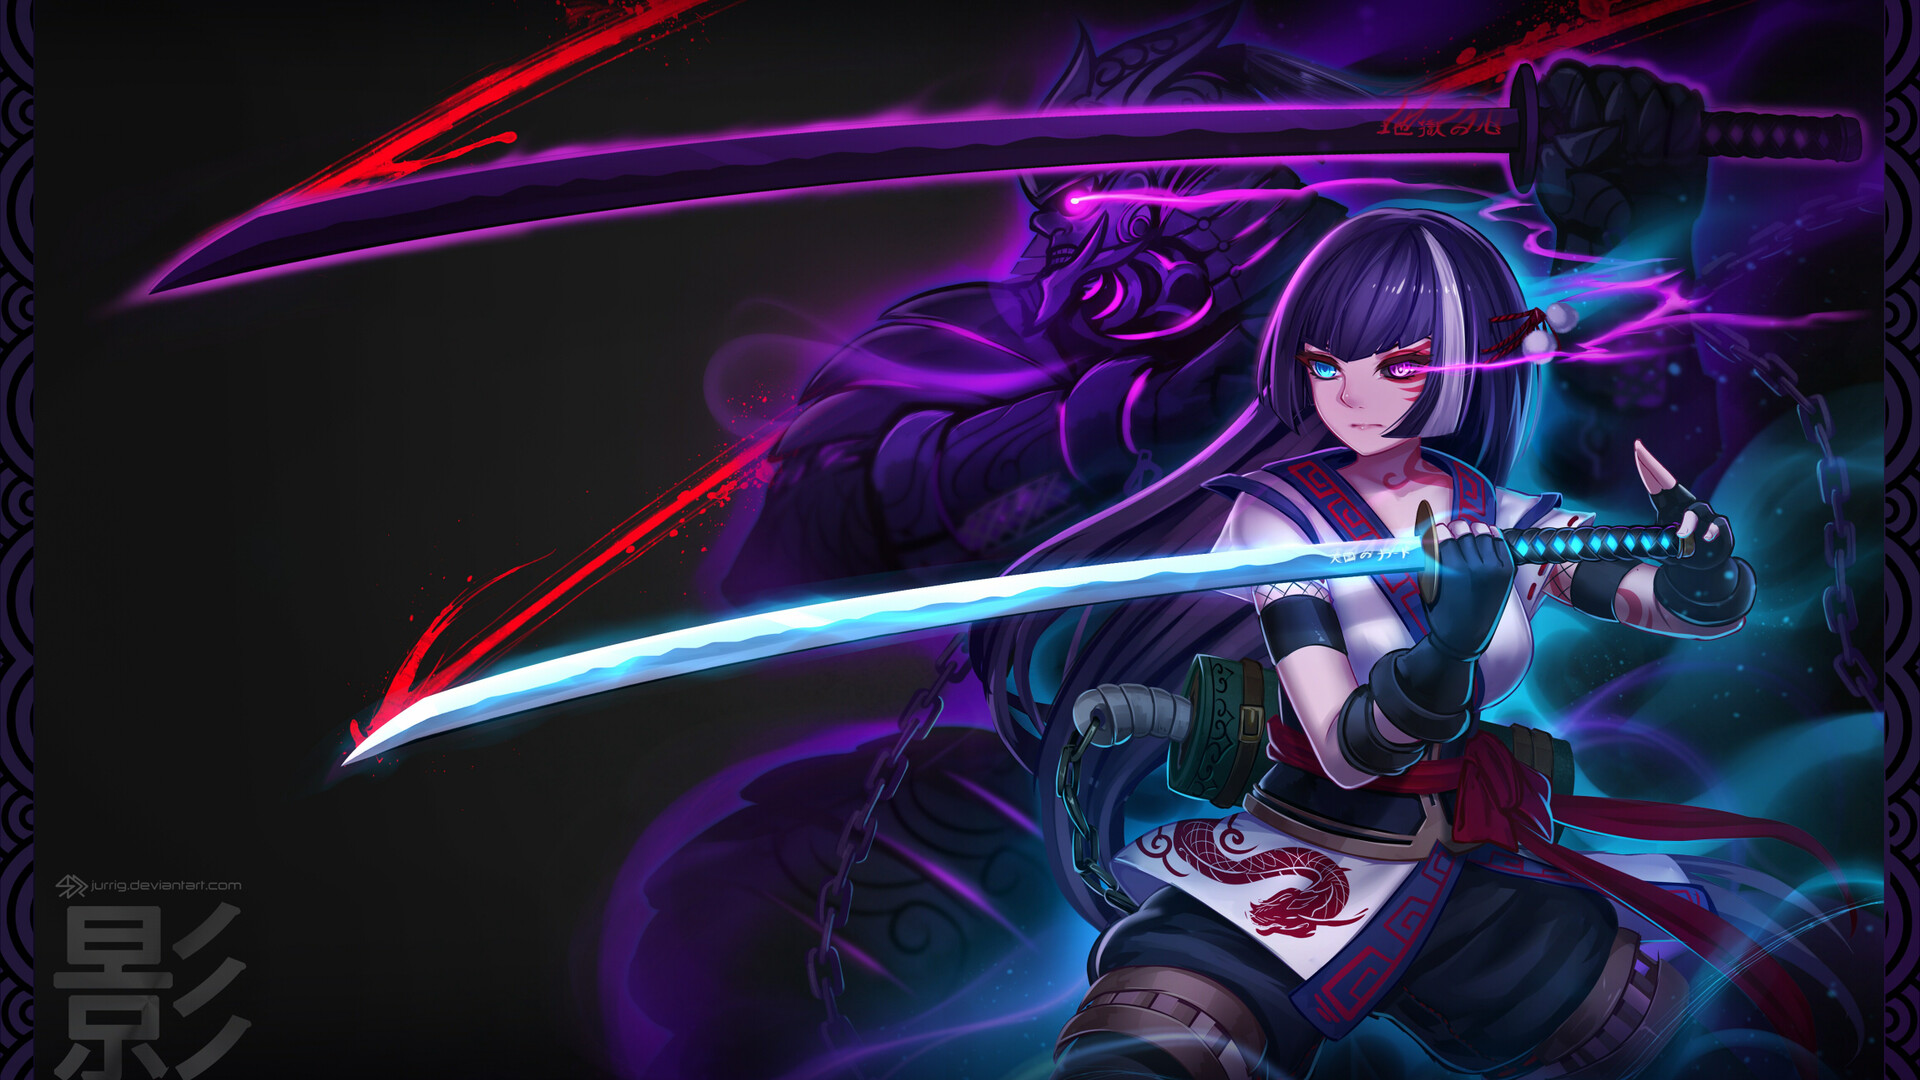 We hope you enjoy our variety and growing collection of hd images to use as a. 1920x1080 Anime Warrior Girl Laptop Full HD 1080P HD 4k ...